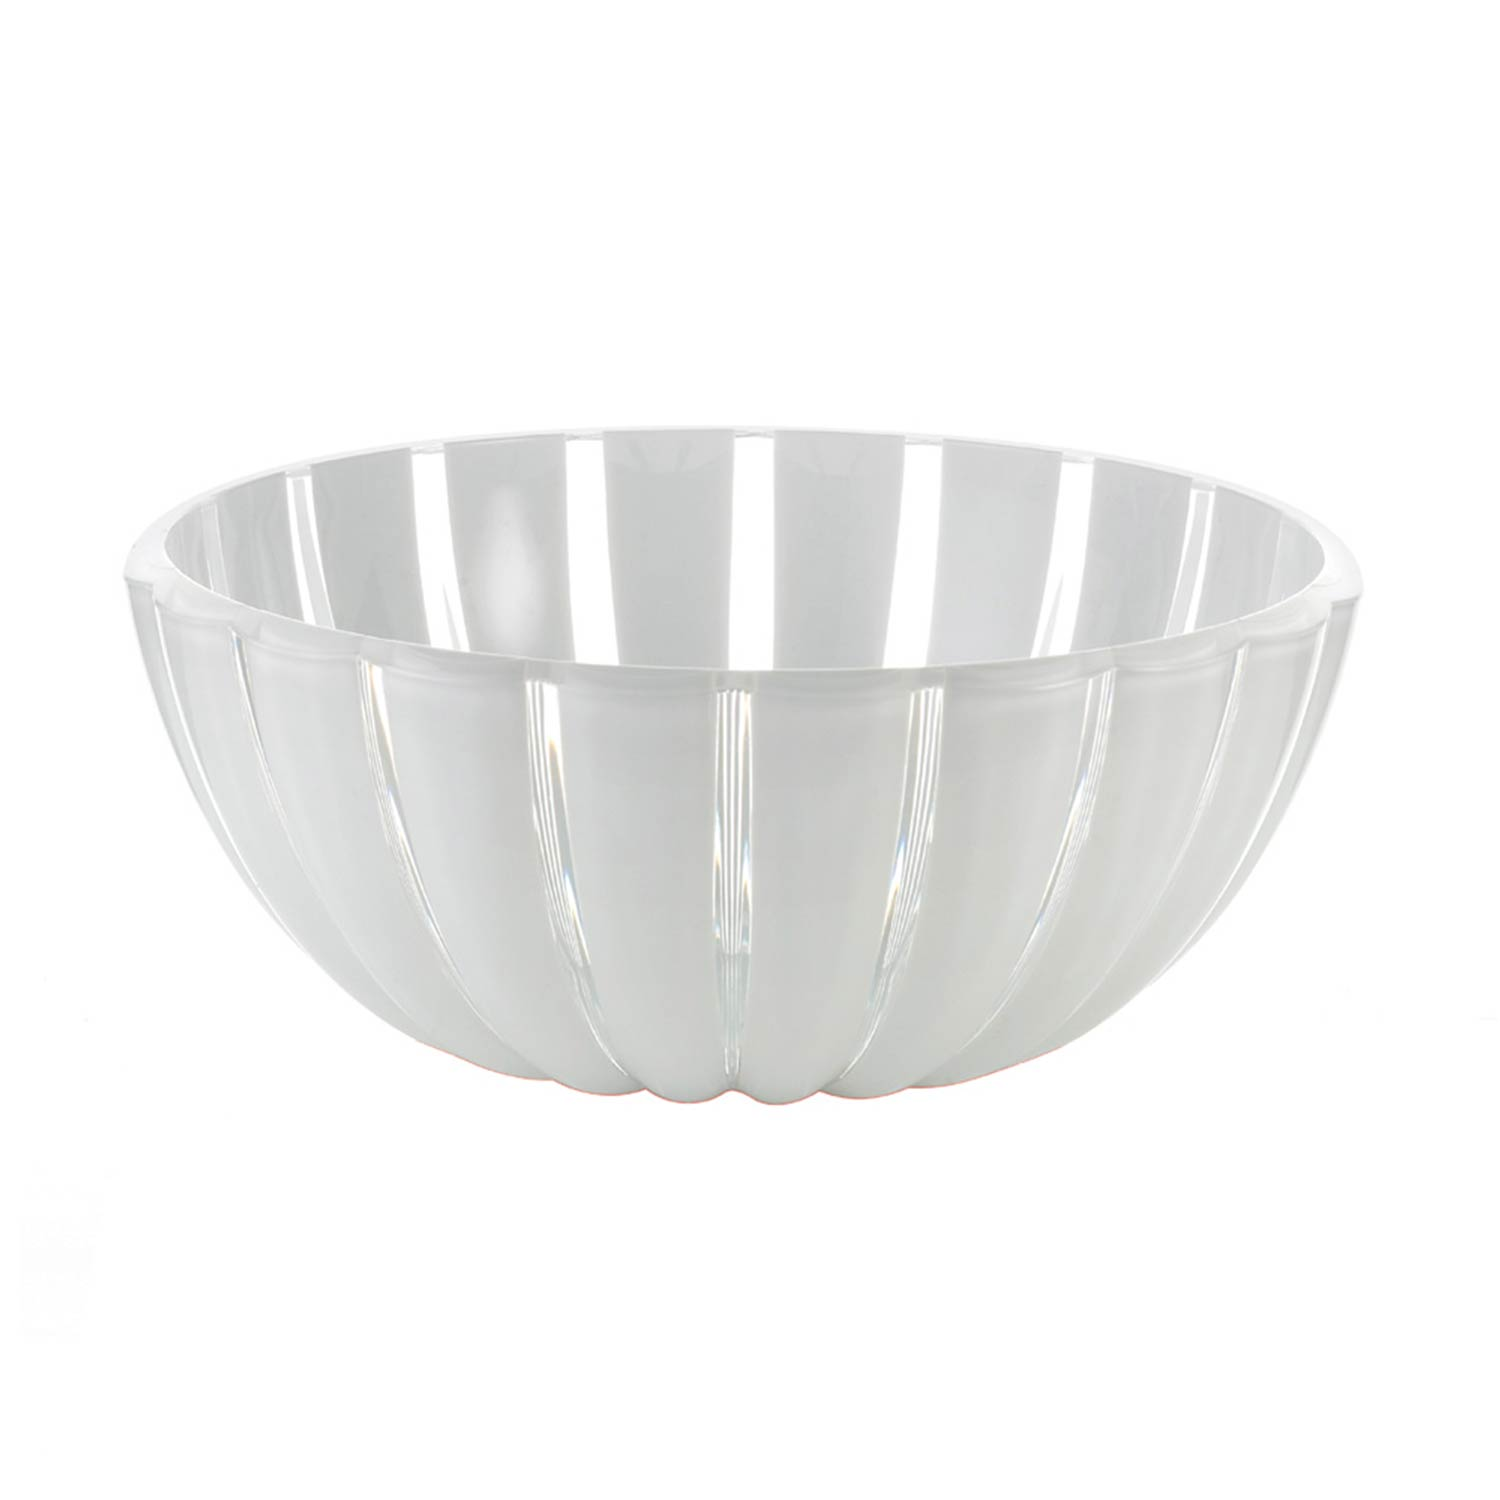 Guzzini bowl clear